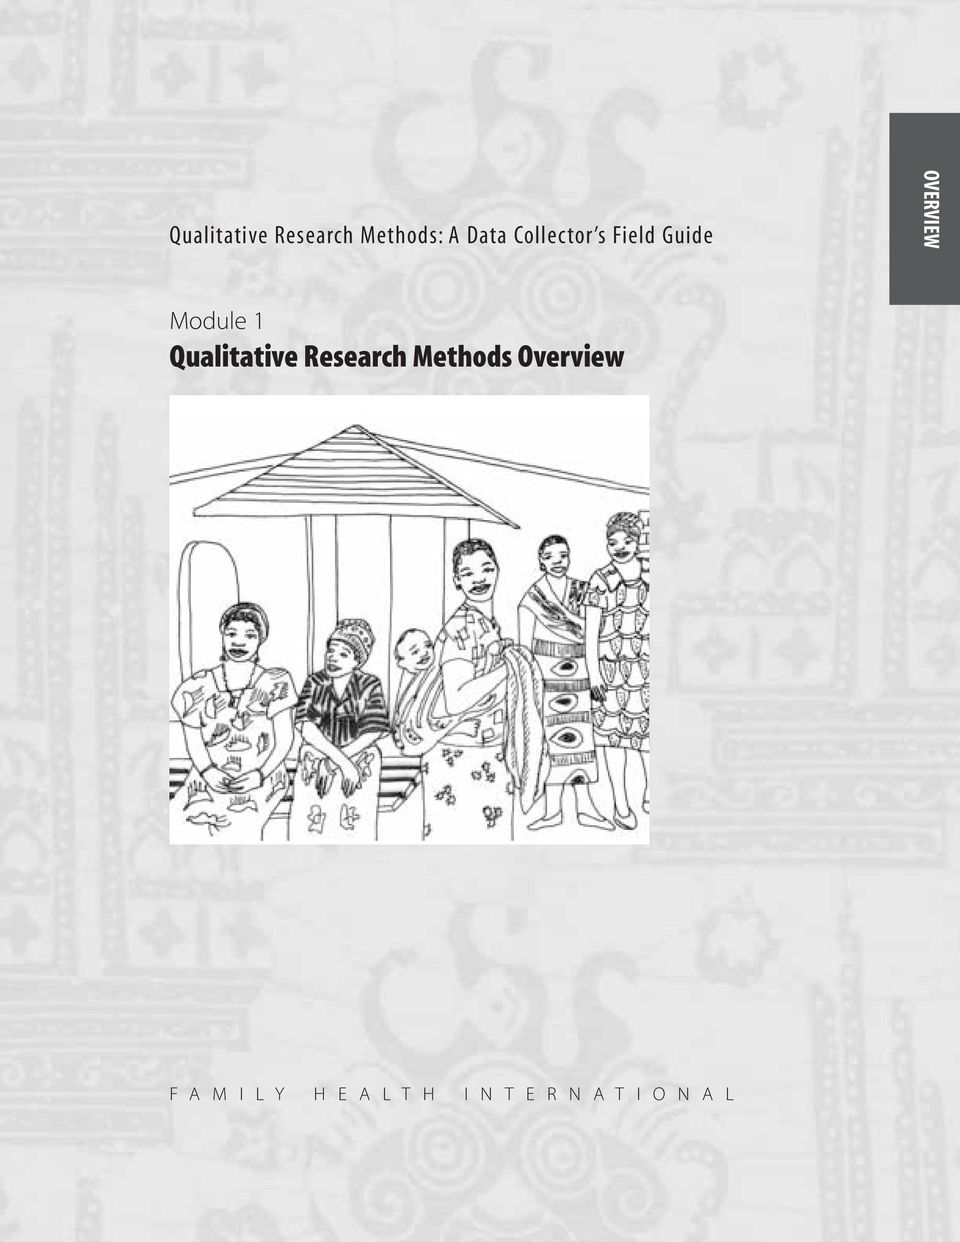 Qualitative Research Methods Overview F A